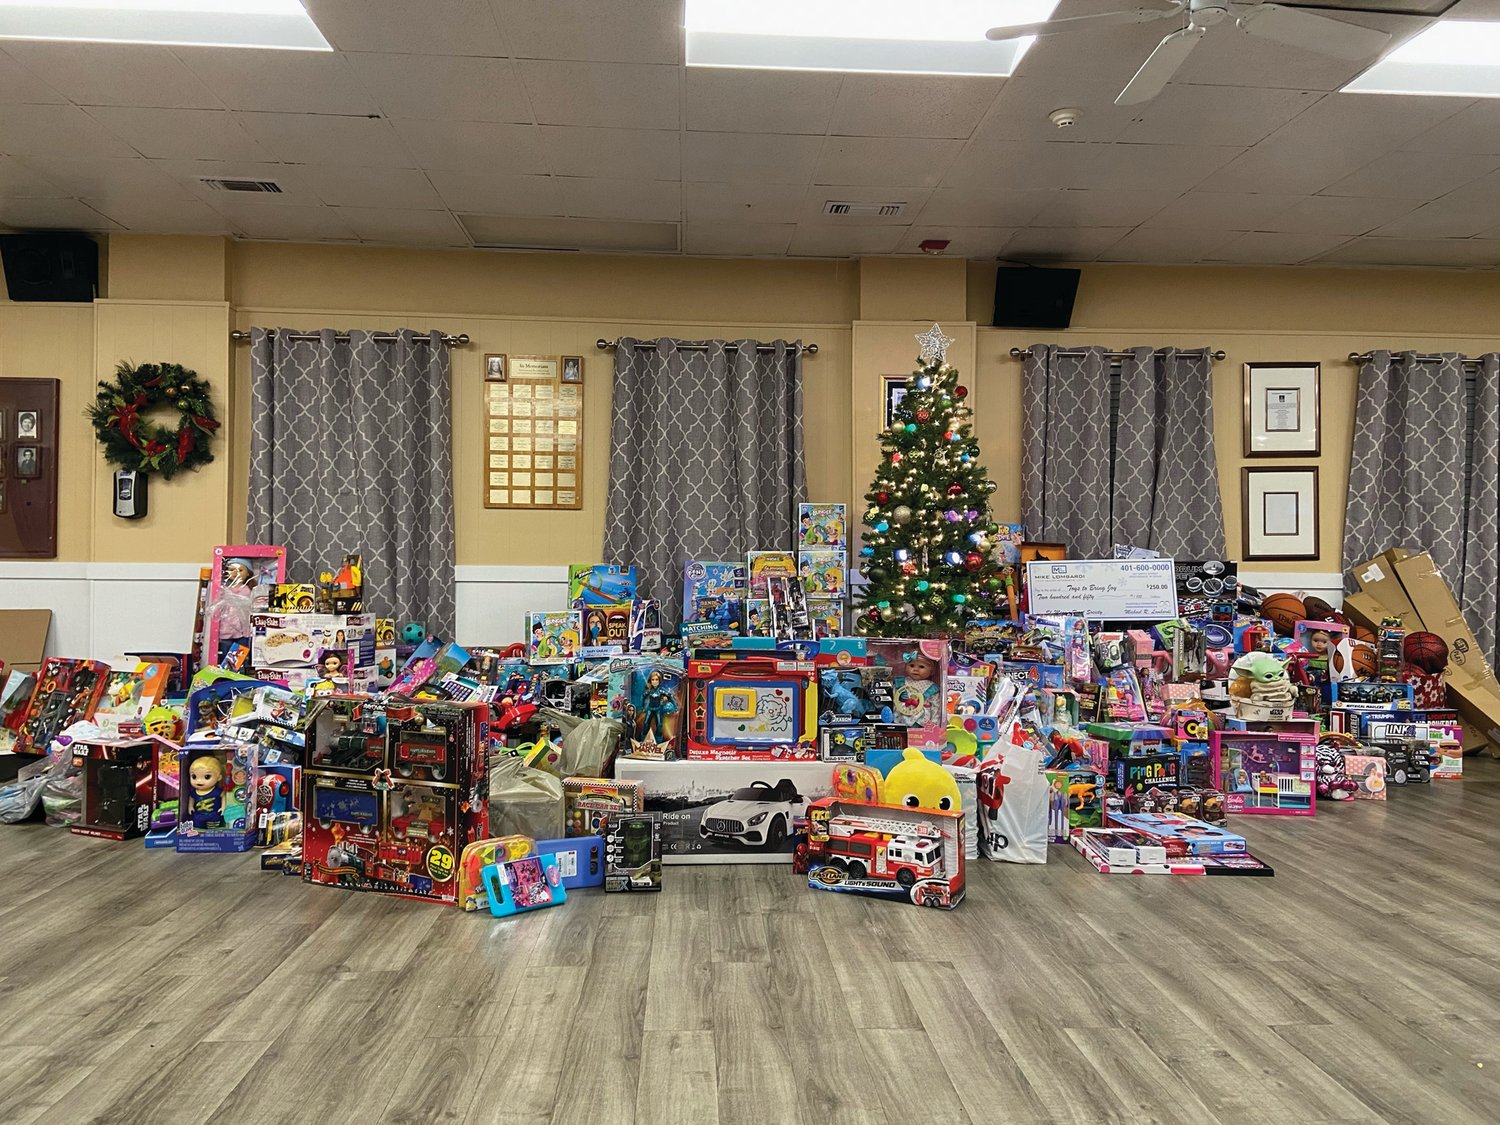 BRINGING JOY: Donated toys surround the Christmas tree at the St. Mary's Feast Society building in Knightsville. The toys will be distributed to families in need during a community giveaway this weekend.